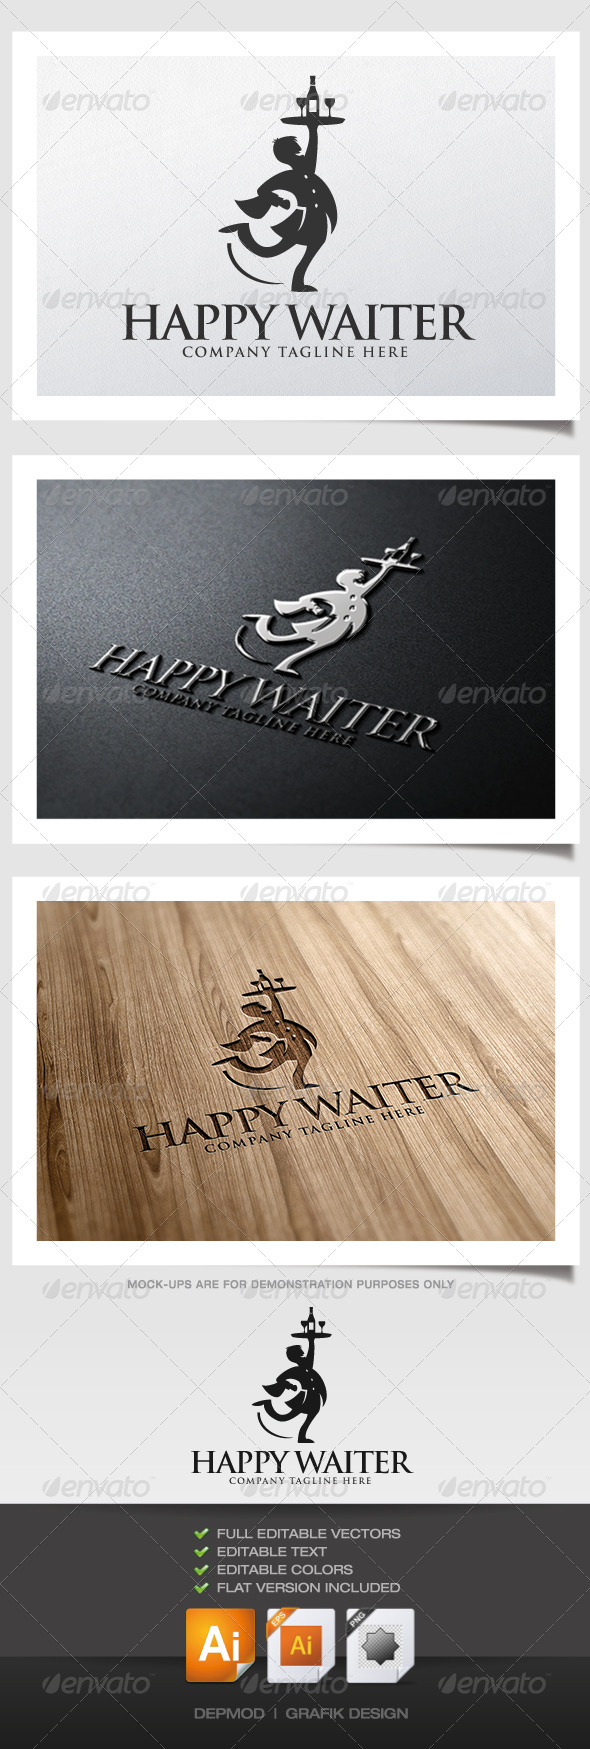 GraphicRiver Happy Waiter Logo 5292675